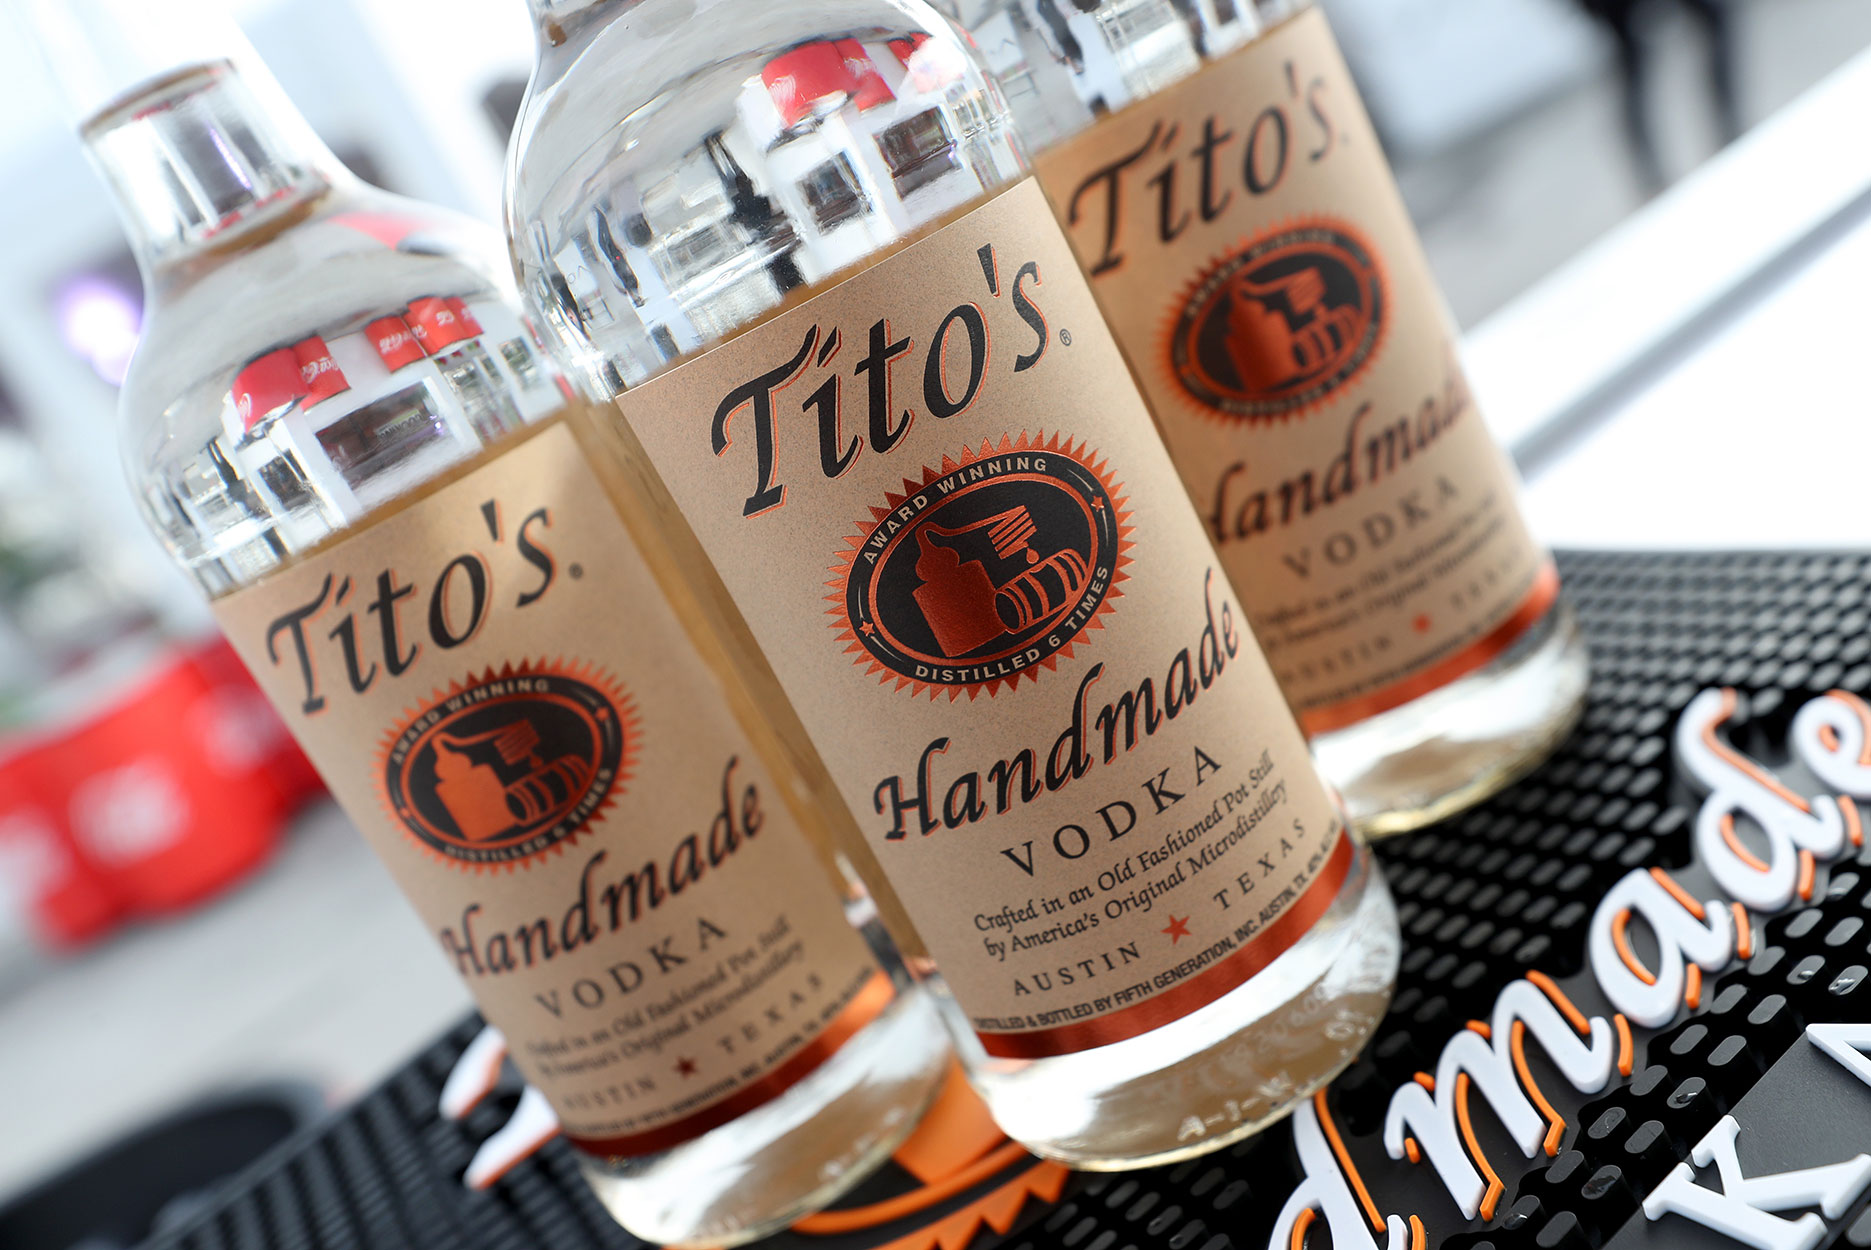 Bottles of Tito's vodka